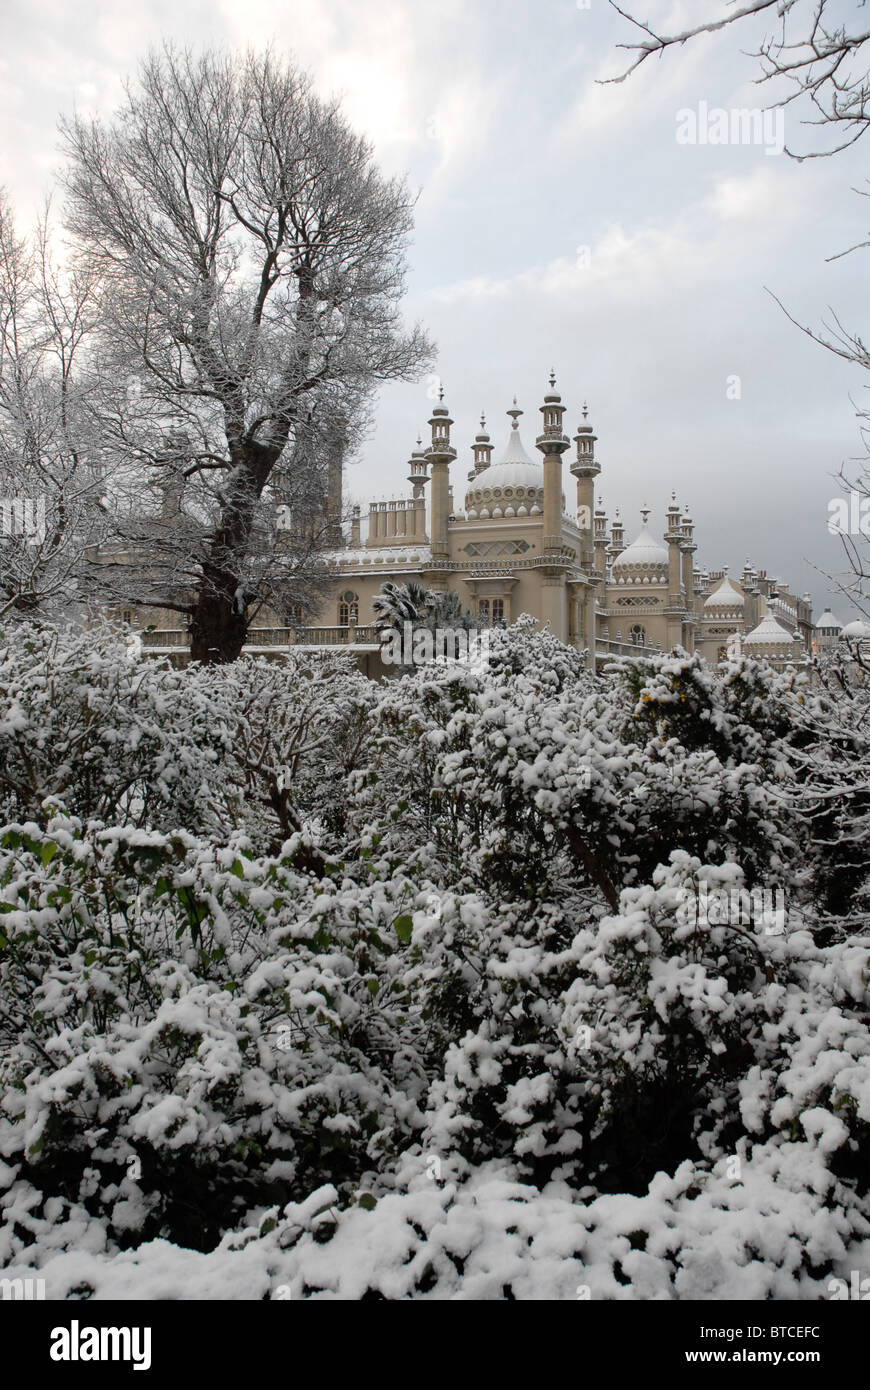 Brighton Royal Pavilion and gardens in the snow Stock Photo